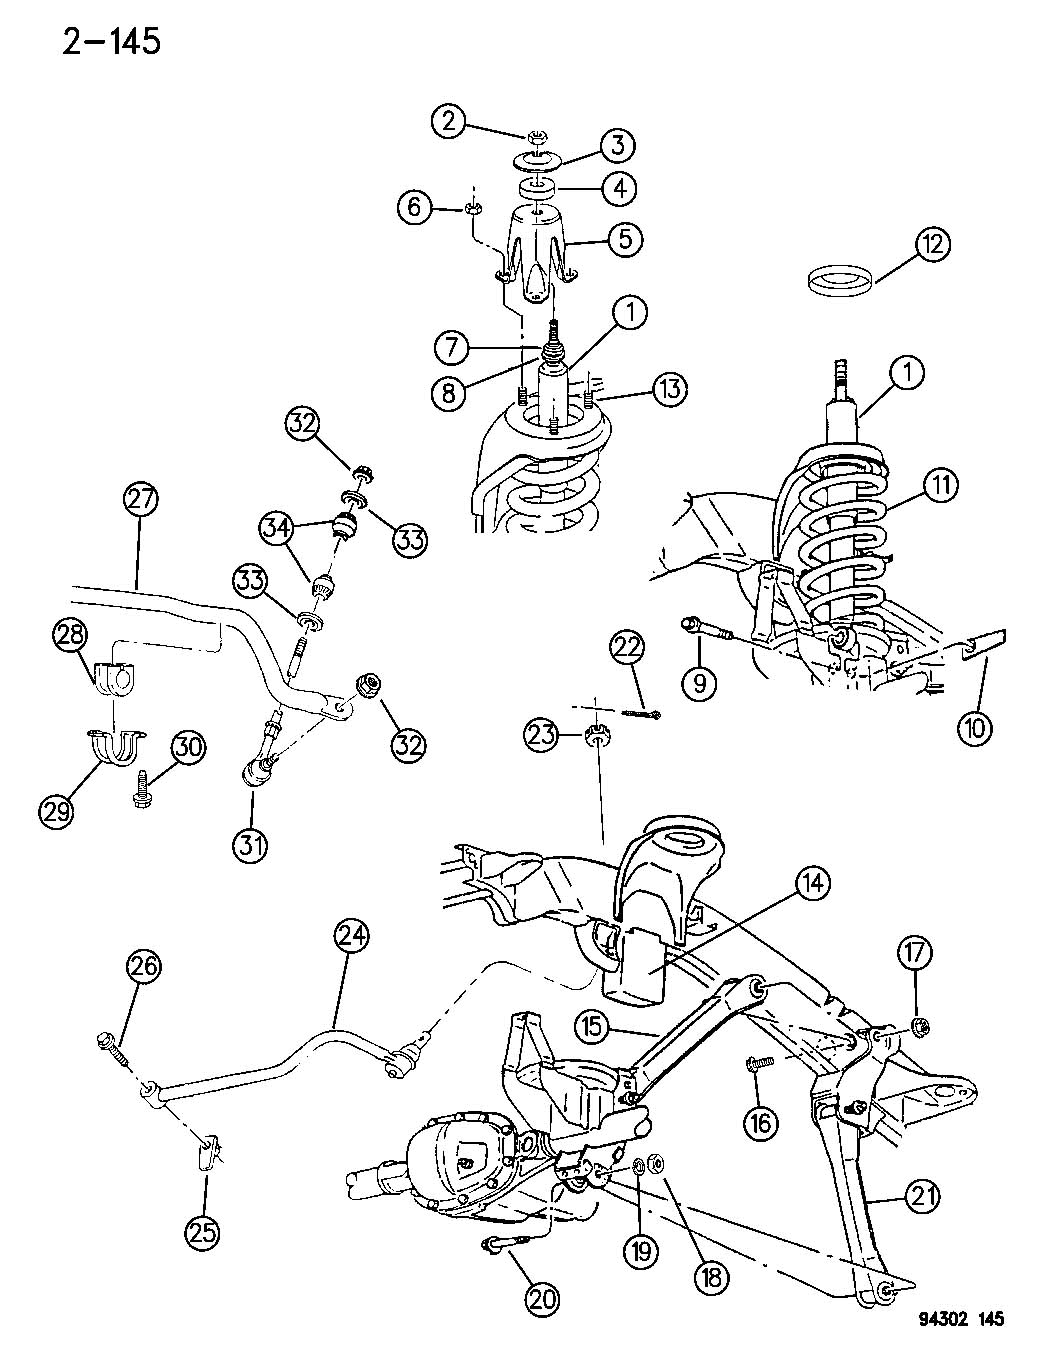 Diagram Fuse Box Diagram For Dodge Ram Full